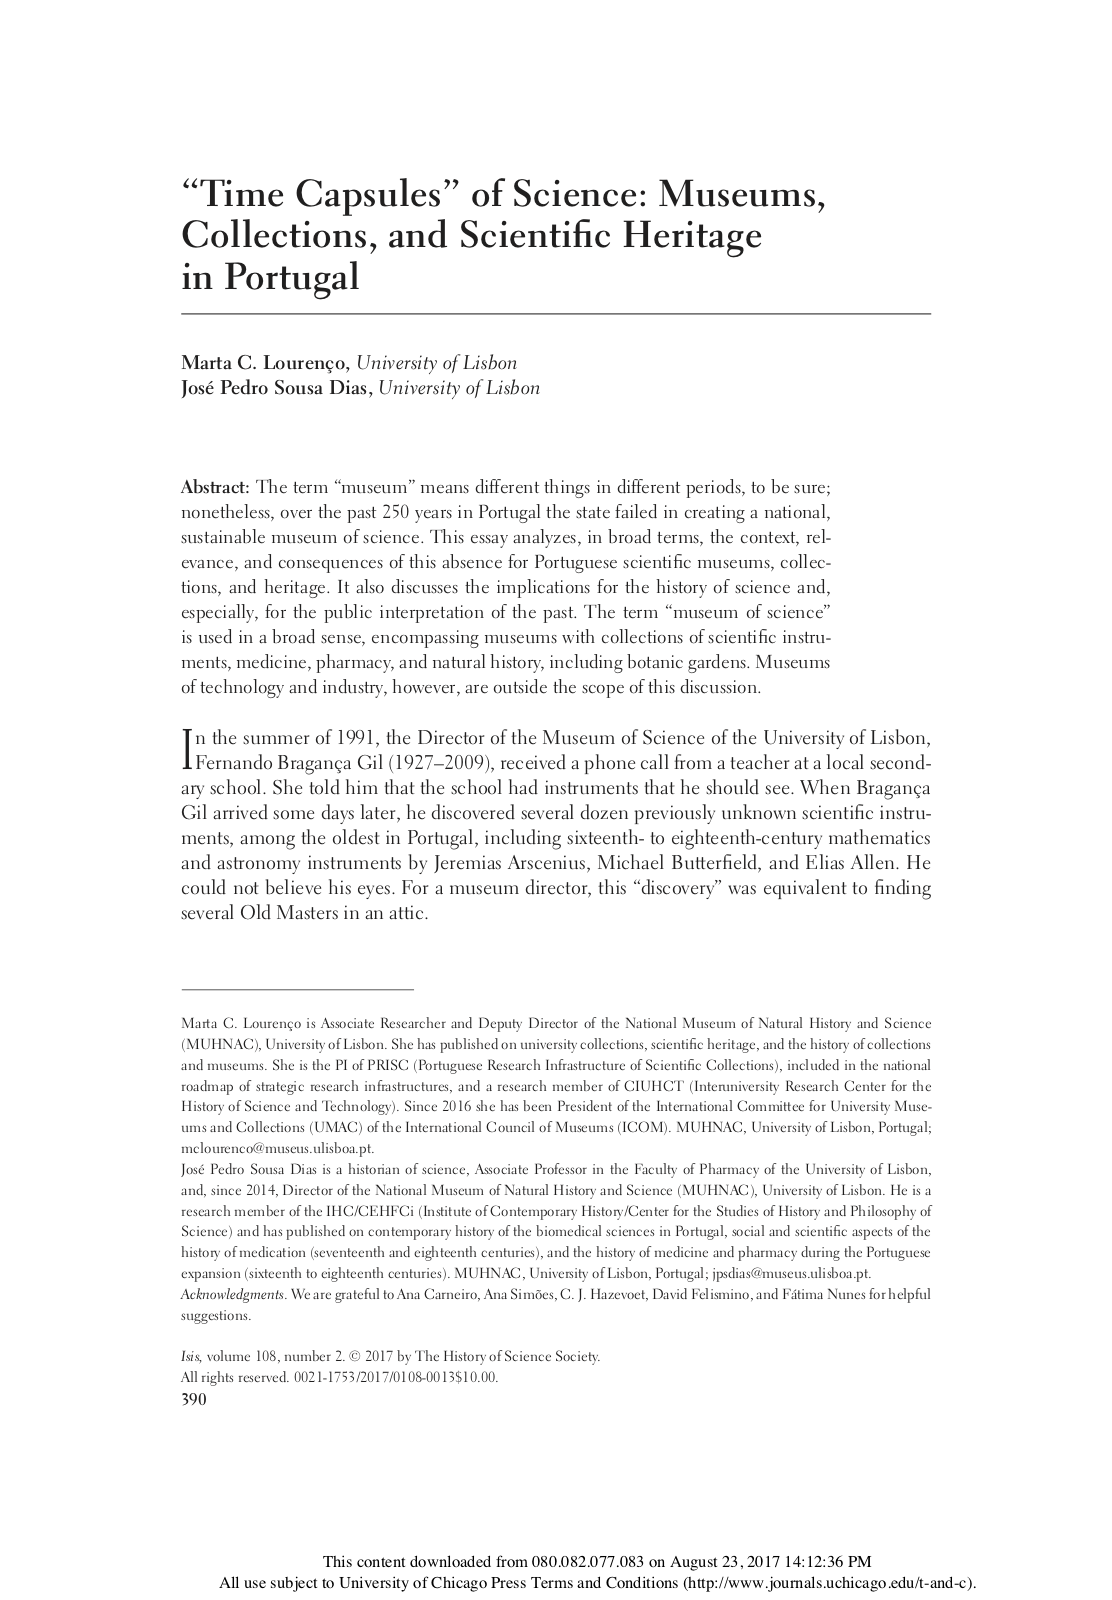 The 'time capsules' of science: Museums, collections and scientific heritage in Portugal, Capa